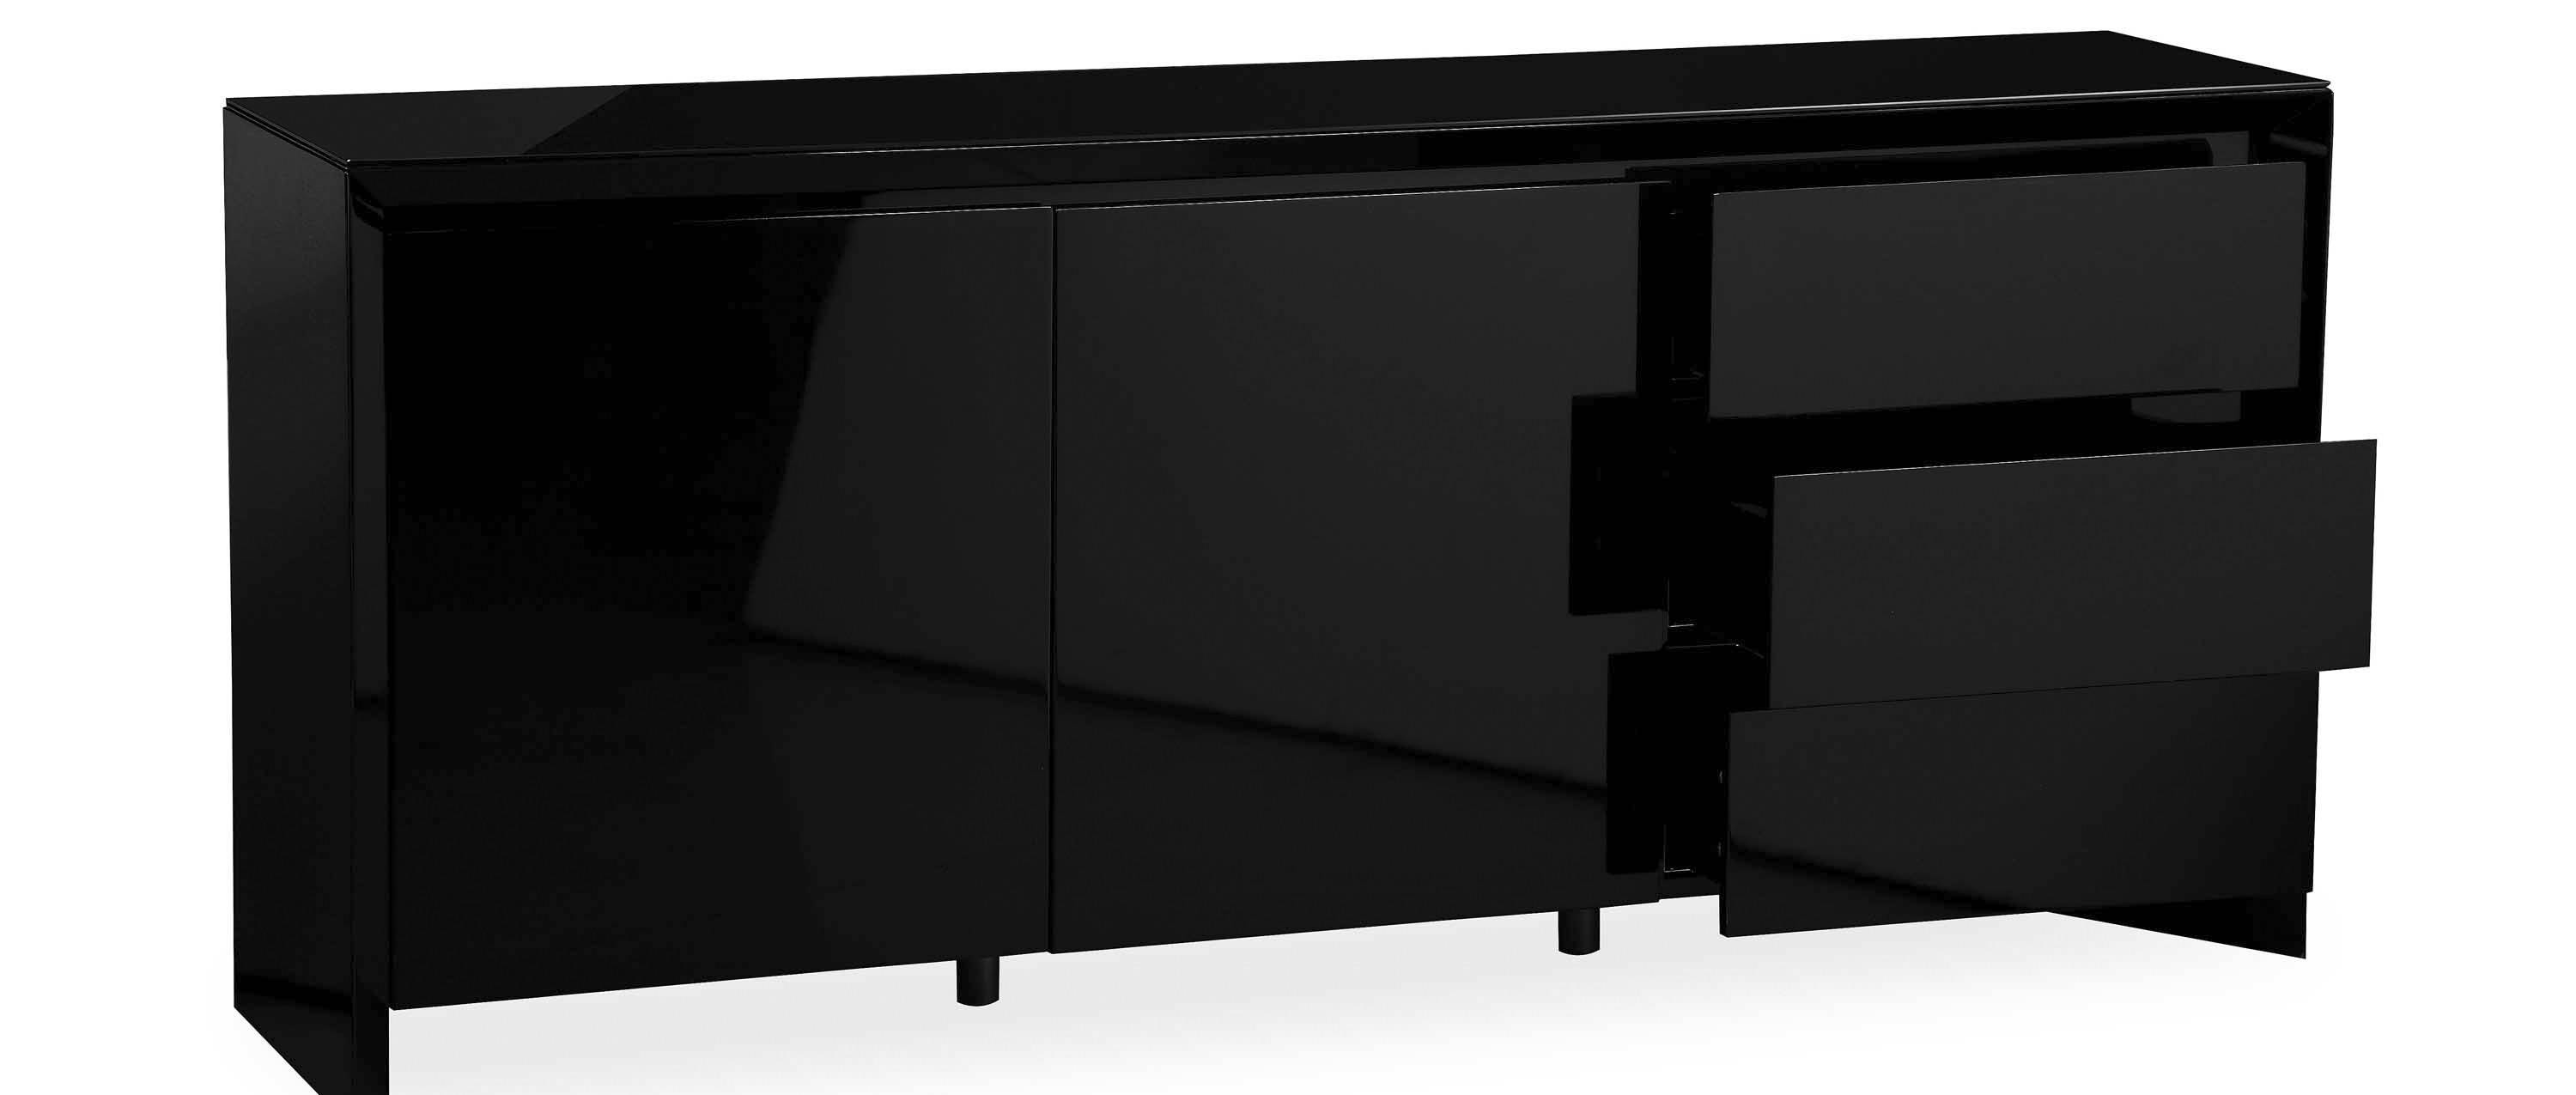 Soho - Extra Large Sideboard - Black High Gloss pertaining to Black Gloss Sideboards (Image 27 of 30)